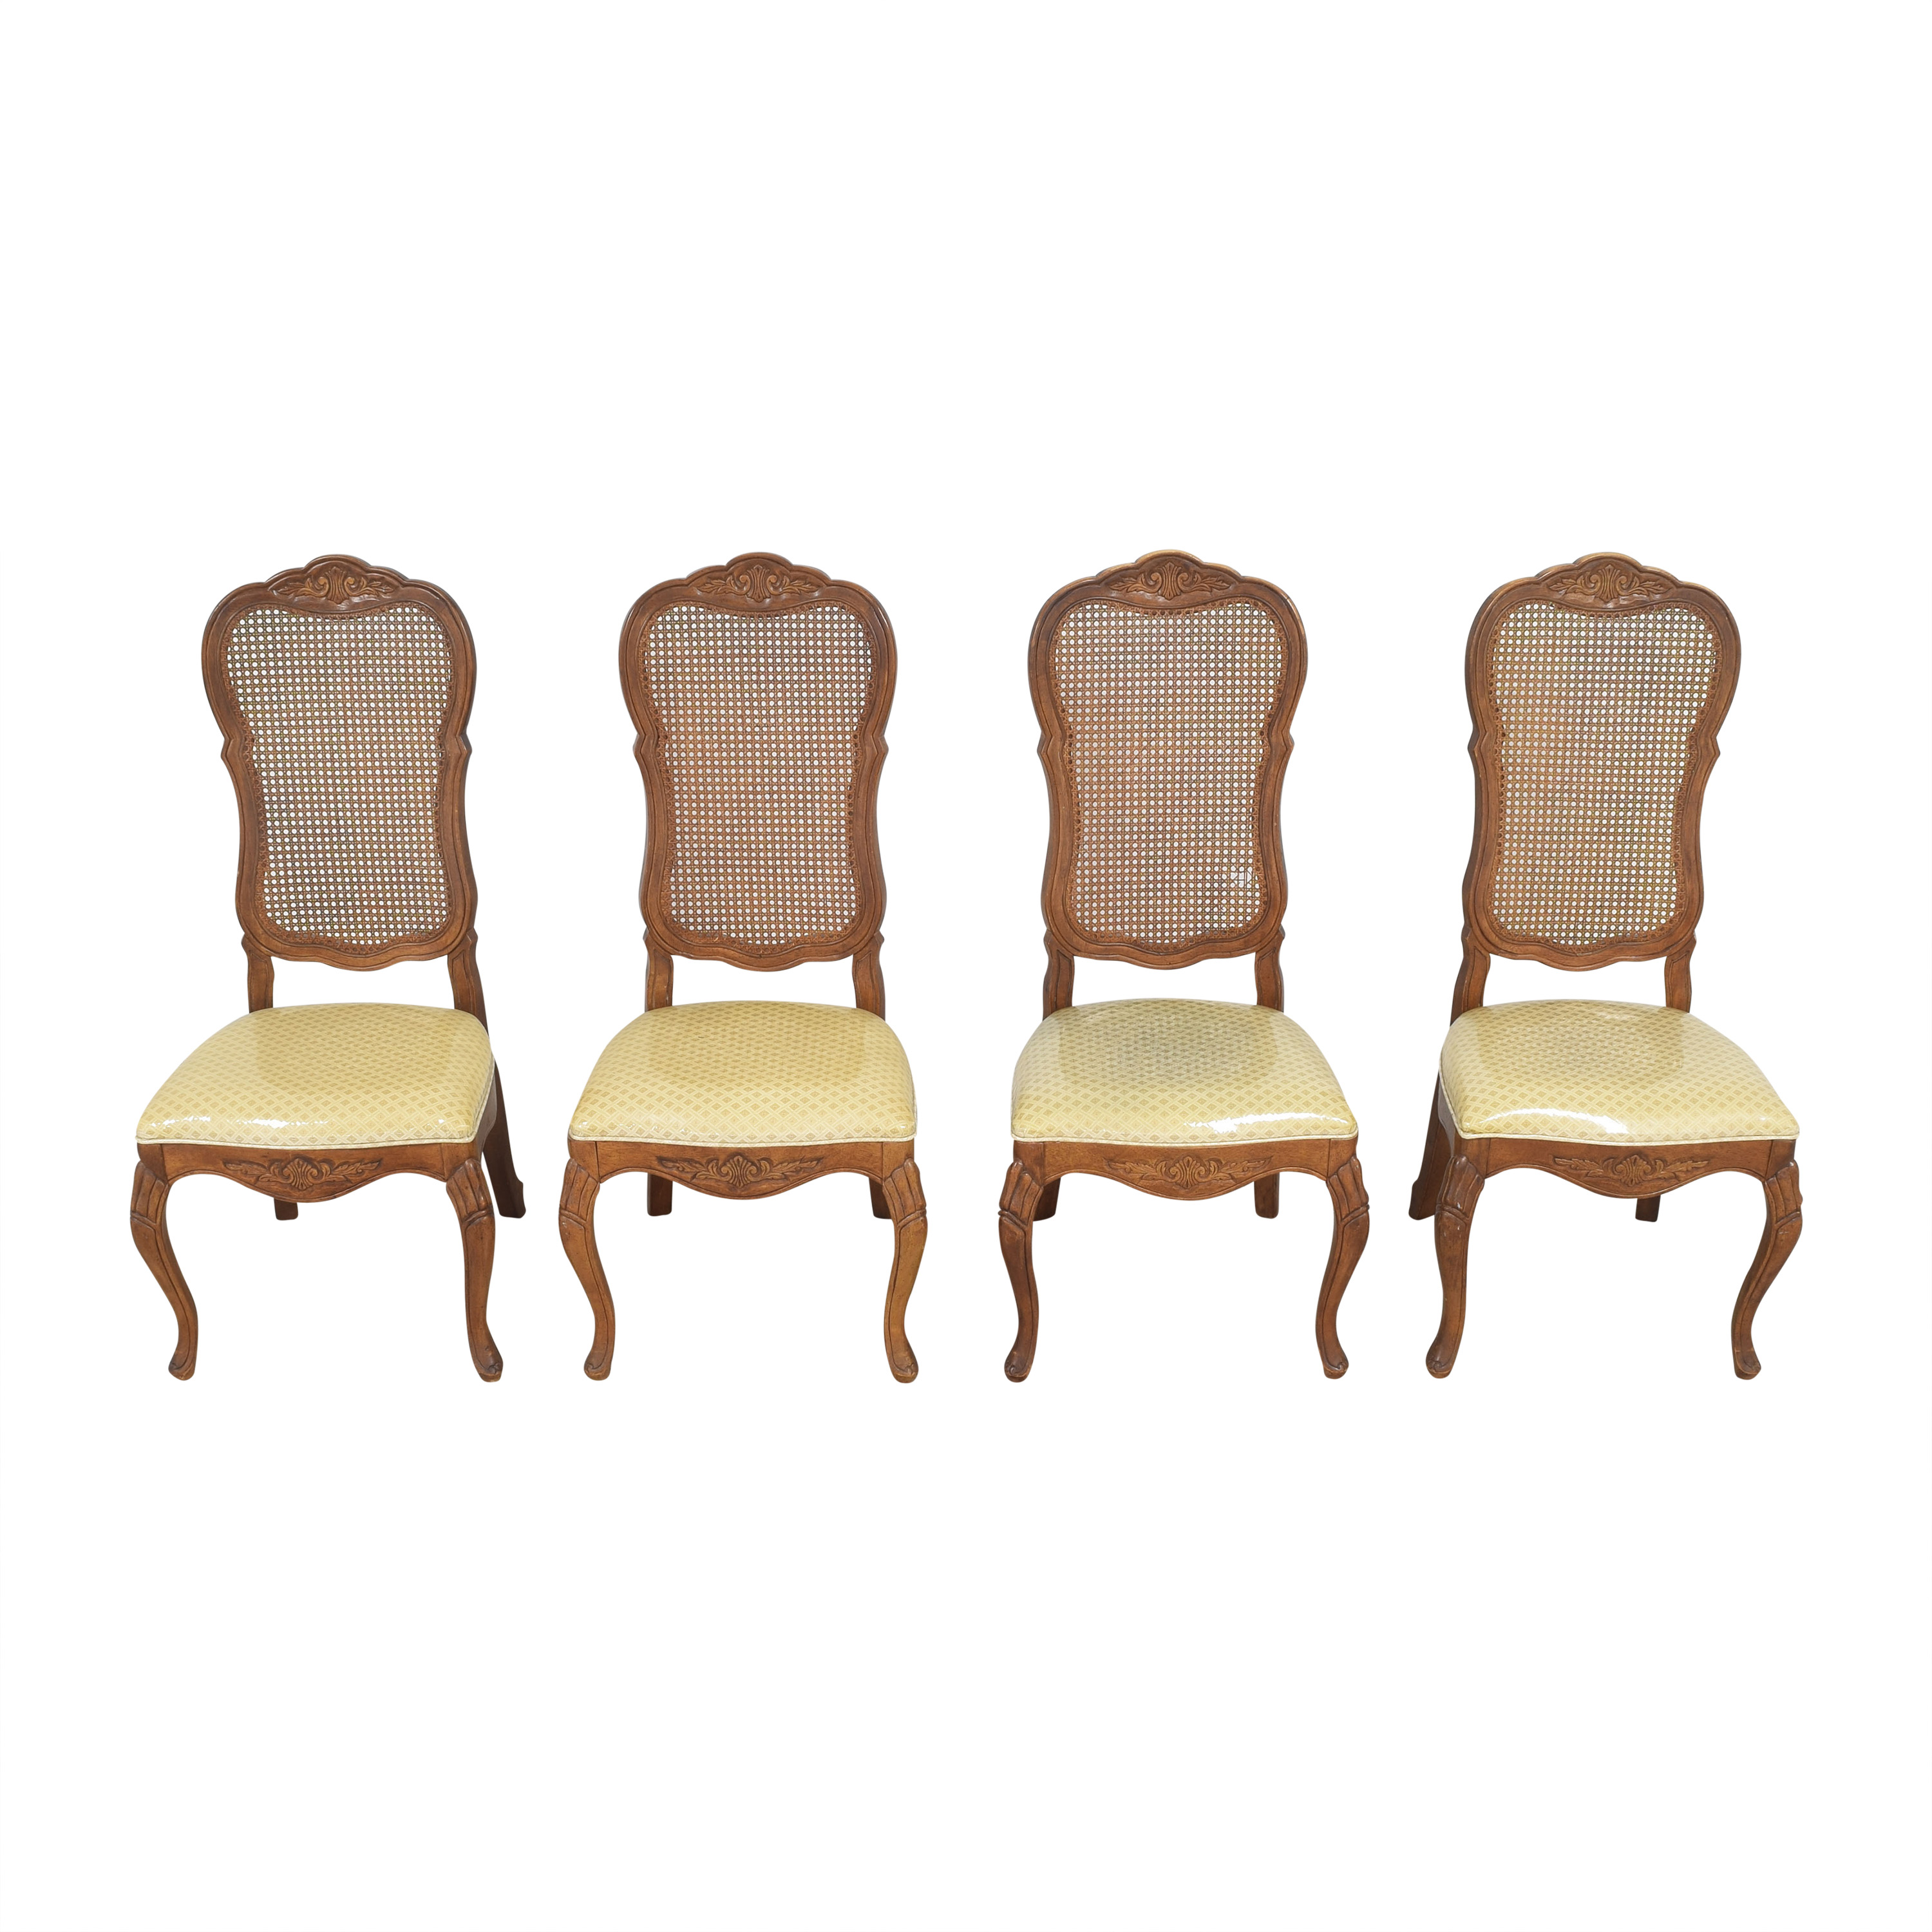 Bernhardt Cane Back Dining Chairs / Chairs